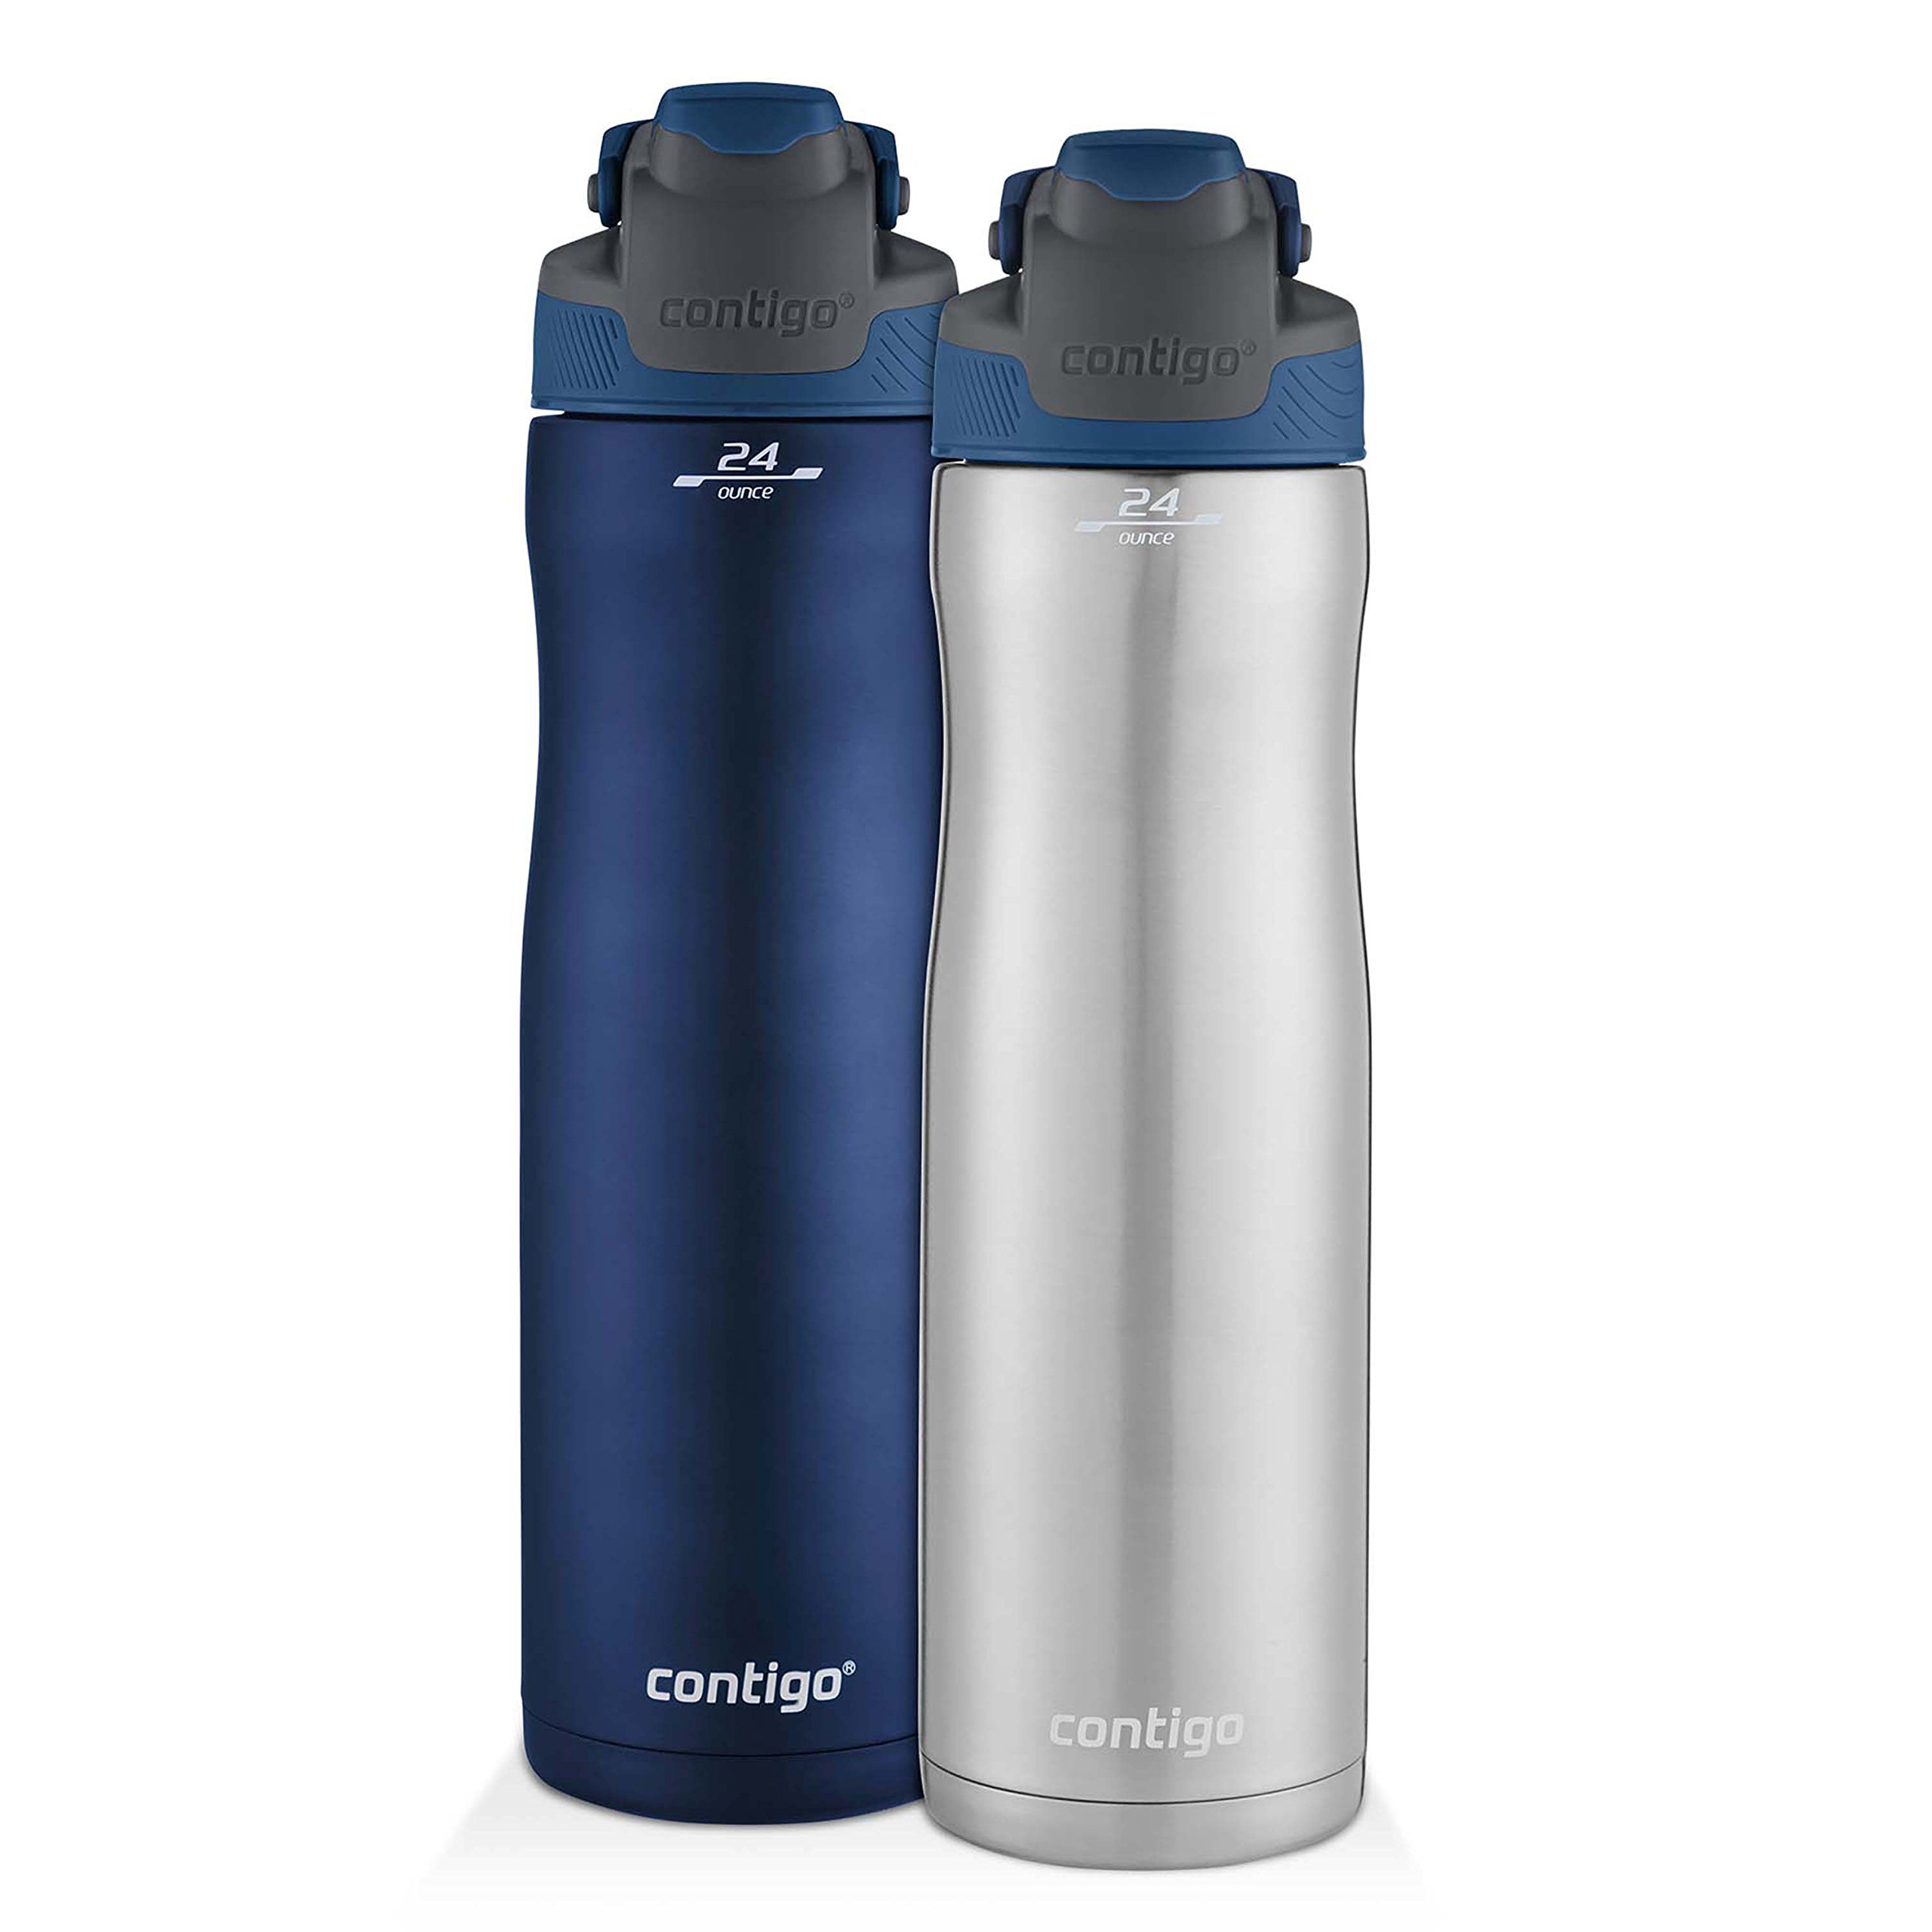 Contigo AUTOSEAL Chill Stainless Steel Water Bottles, 24 oz, SS/Monaco & Monaco, 2-Pack